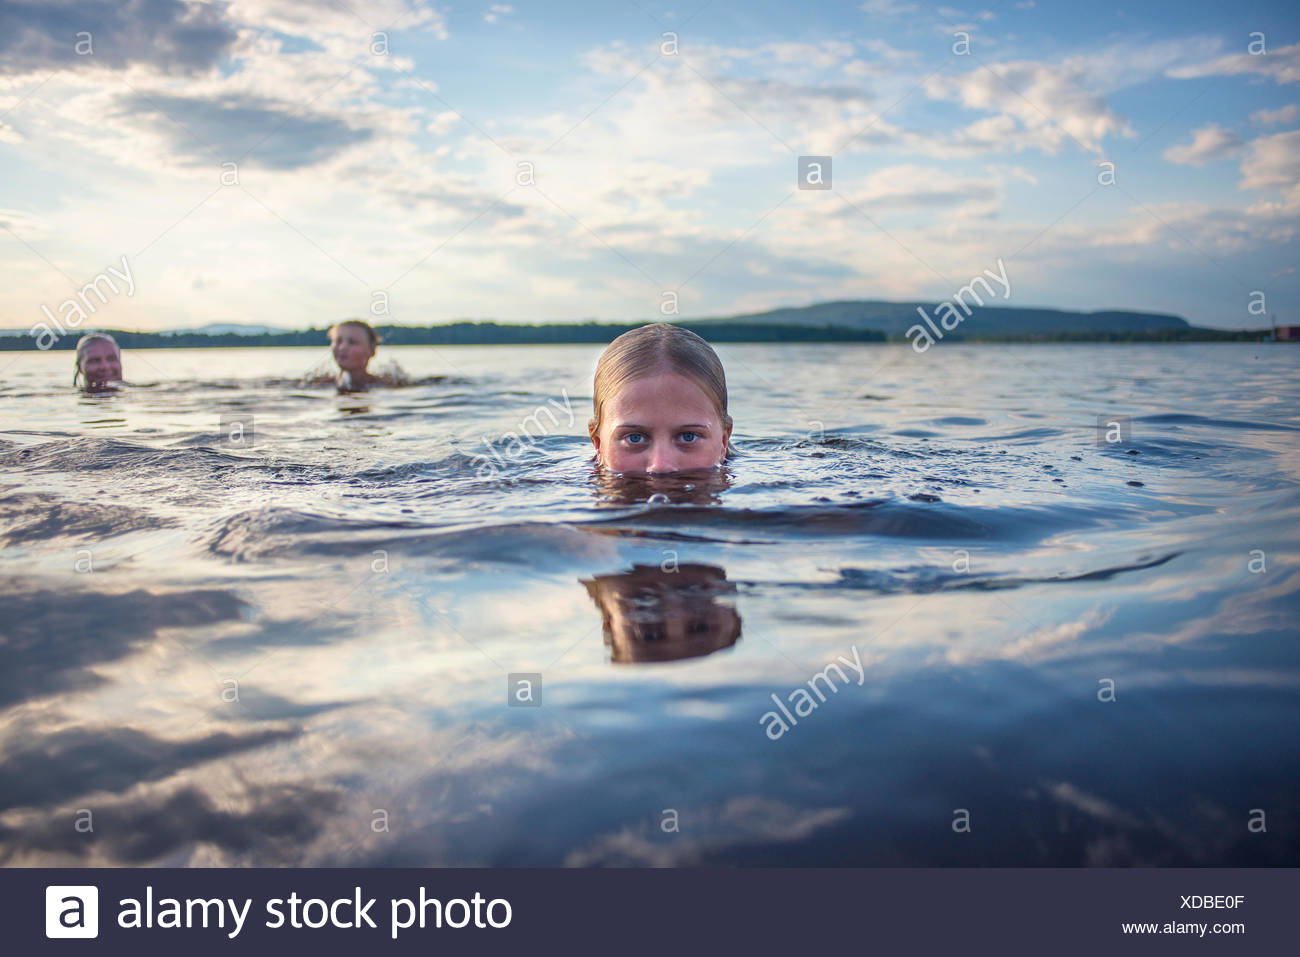 Father and children swimming in lake - Stock Image